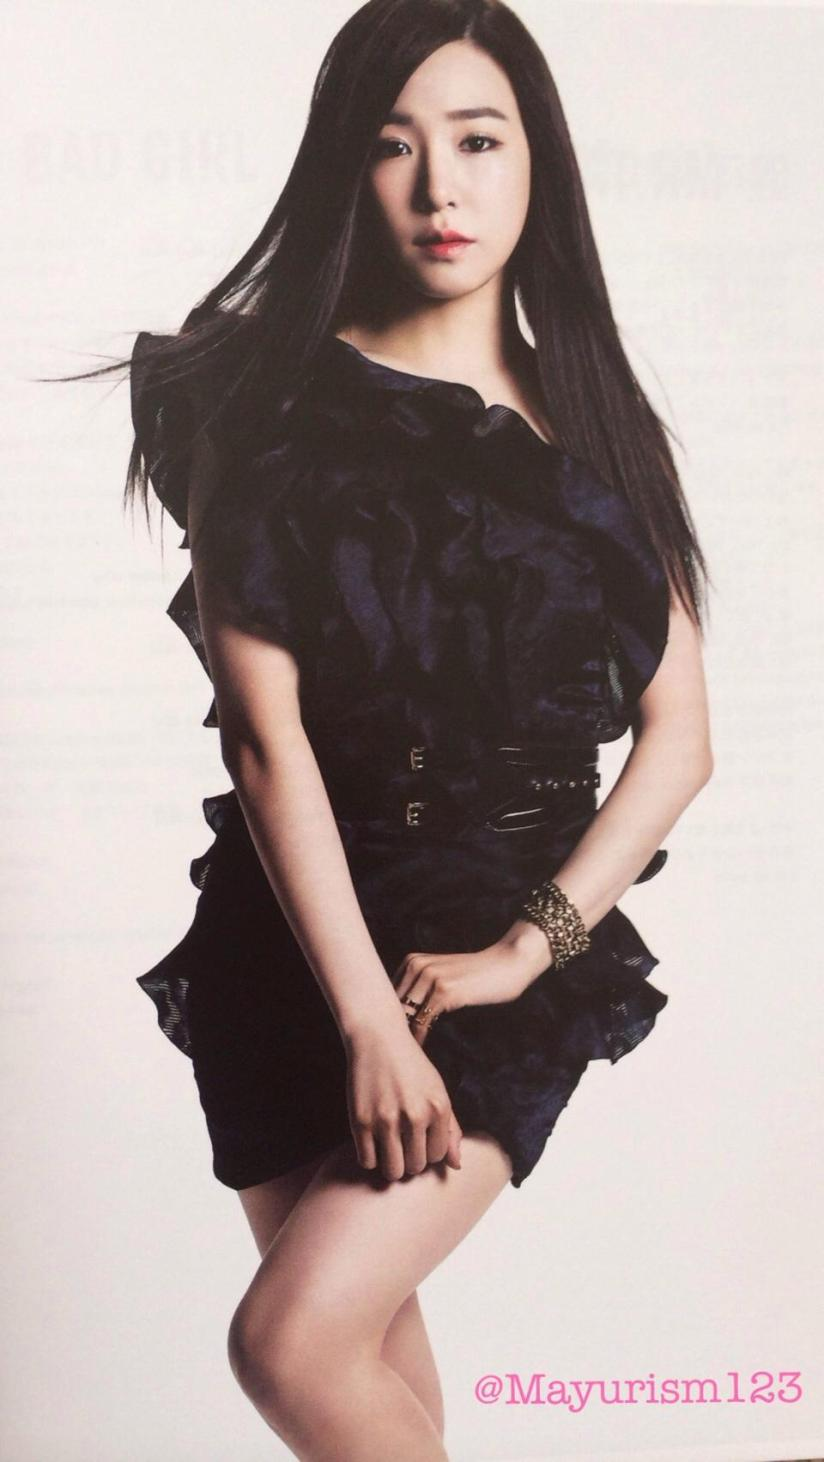 [220714] Tiffany (SNSD) New Picture from Photobook The BEST (The Best Japanese Album - Type F) by Mayurism123 [1]